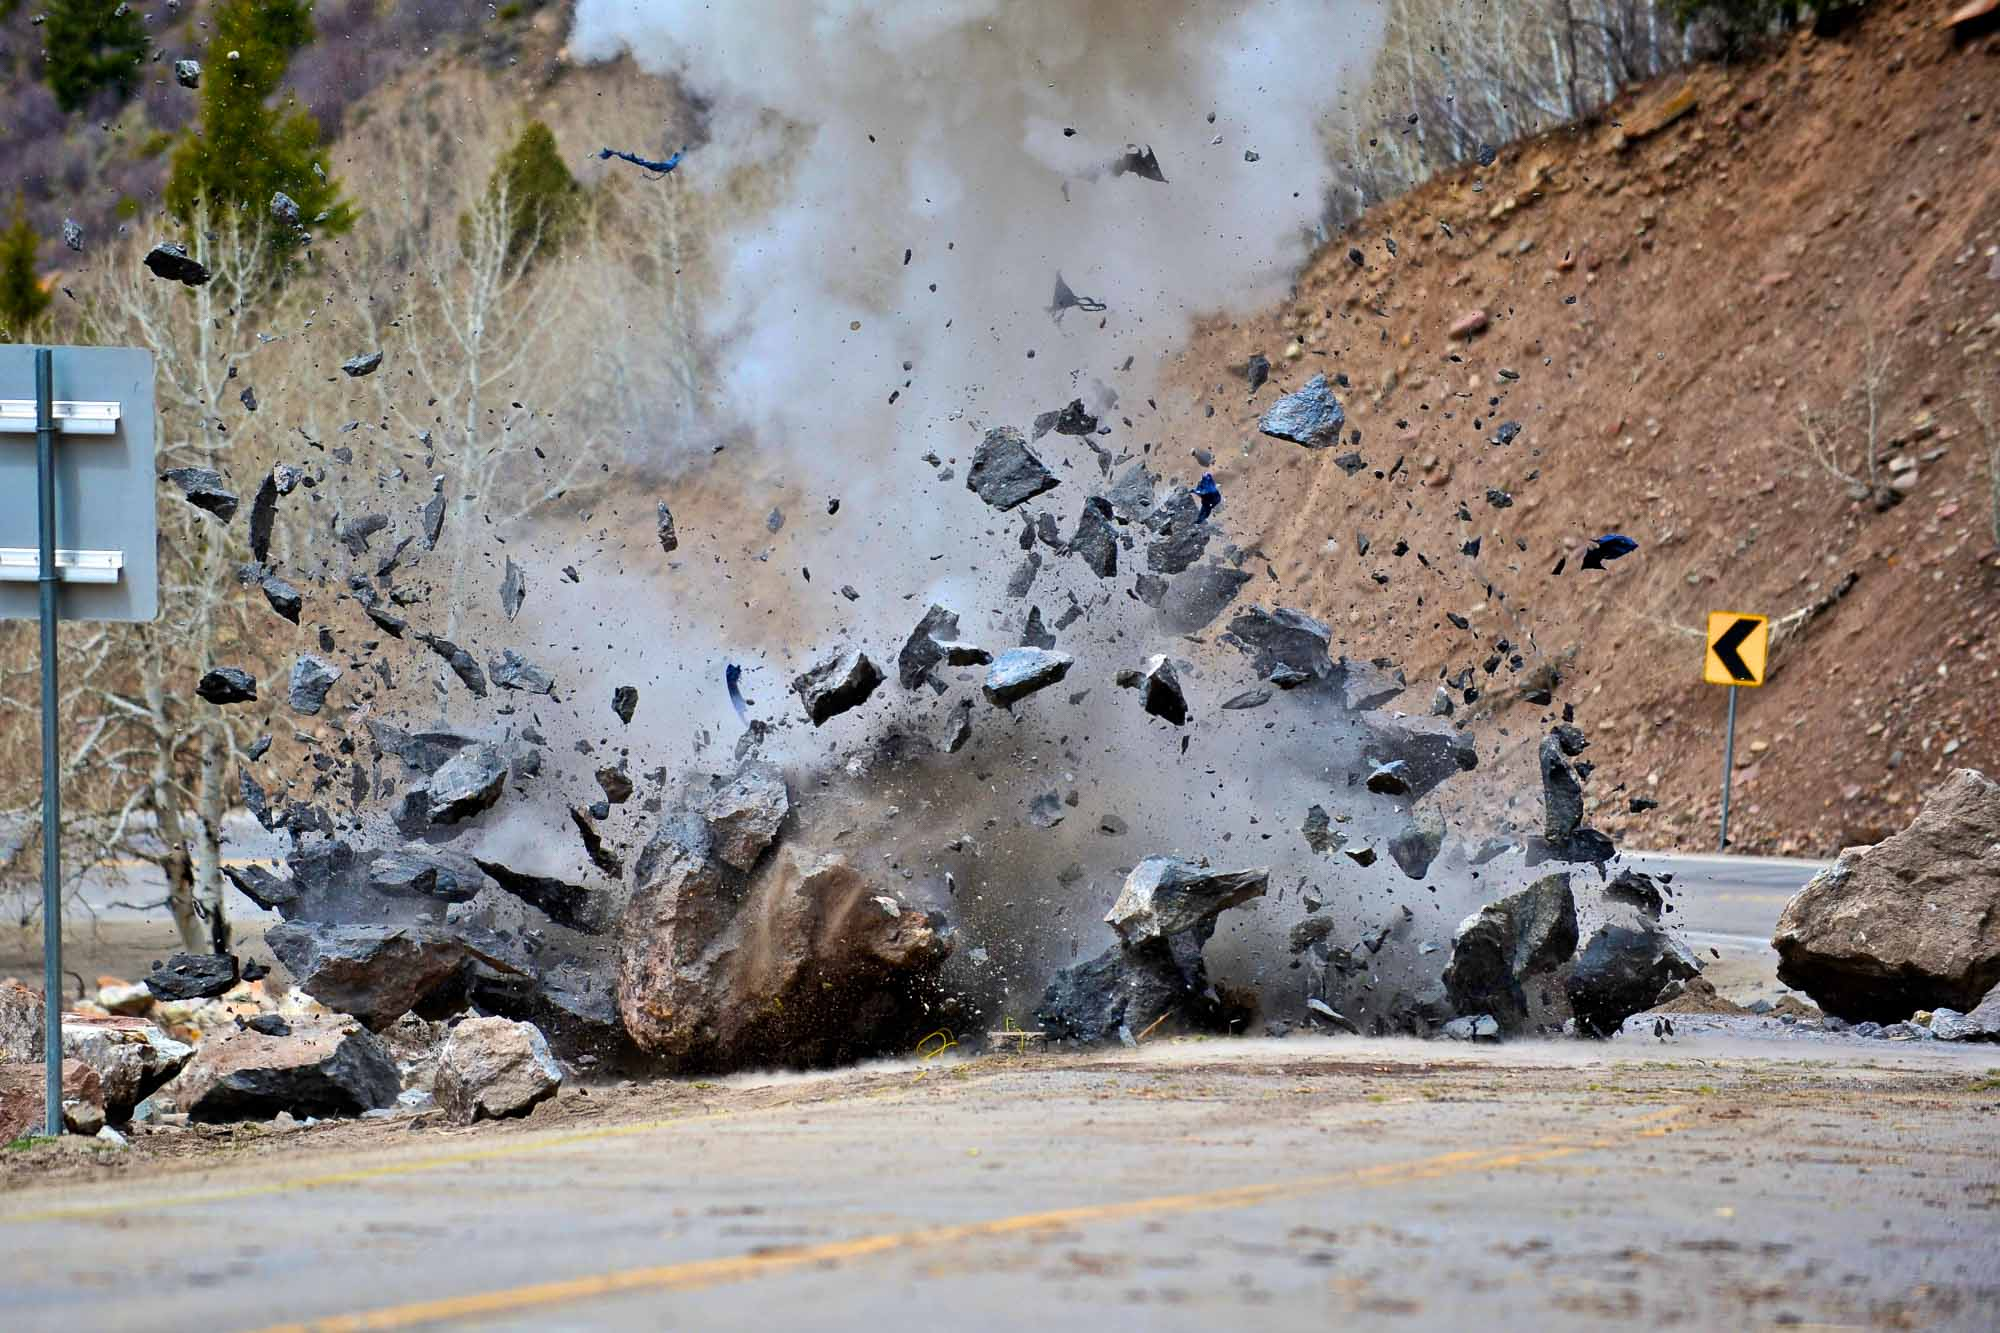 CDOT crew detonate a boulder on U.S. Highway 24 that fell during a rockslide on Tuesday, April 22, 2014. The slide happened off Battle Mountain between Minturn and Leadville, Colo. around 2:30 a.m.